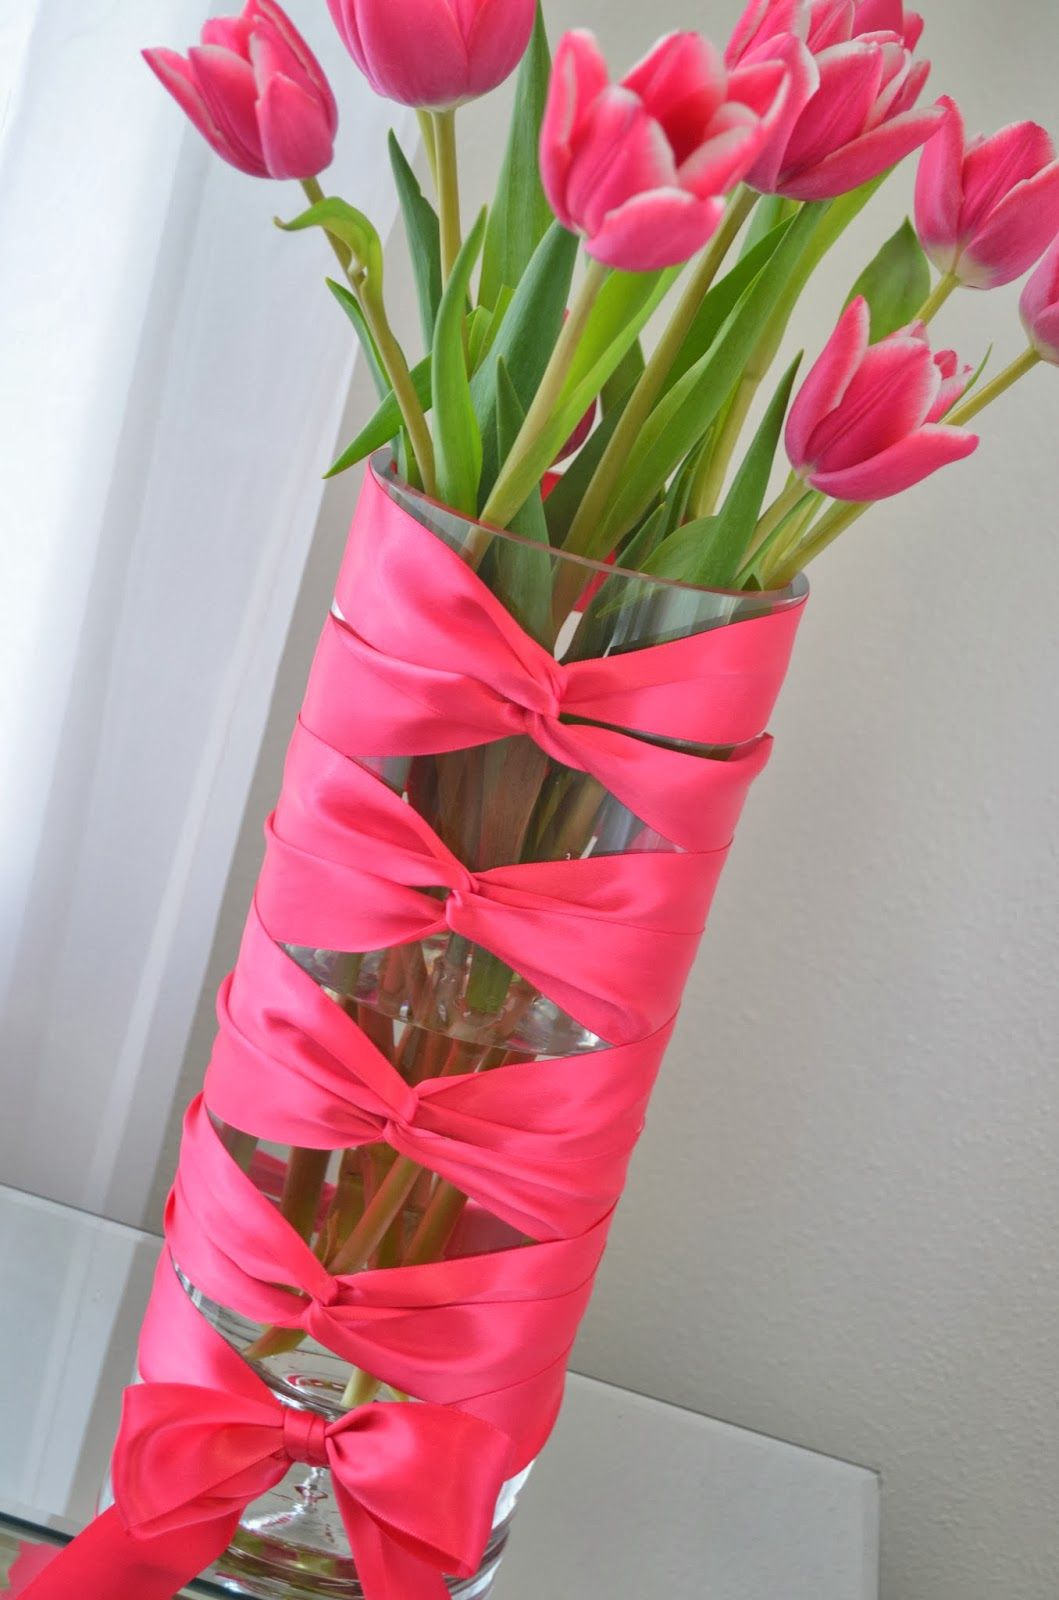 Diy Flower Vase Idea Corset With Tulips